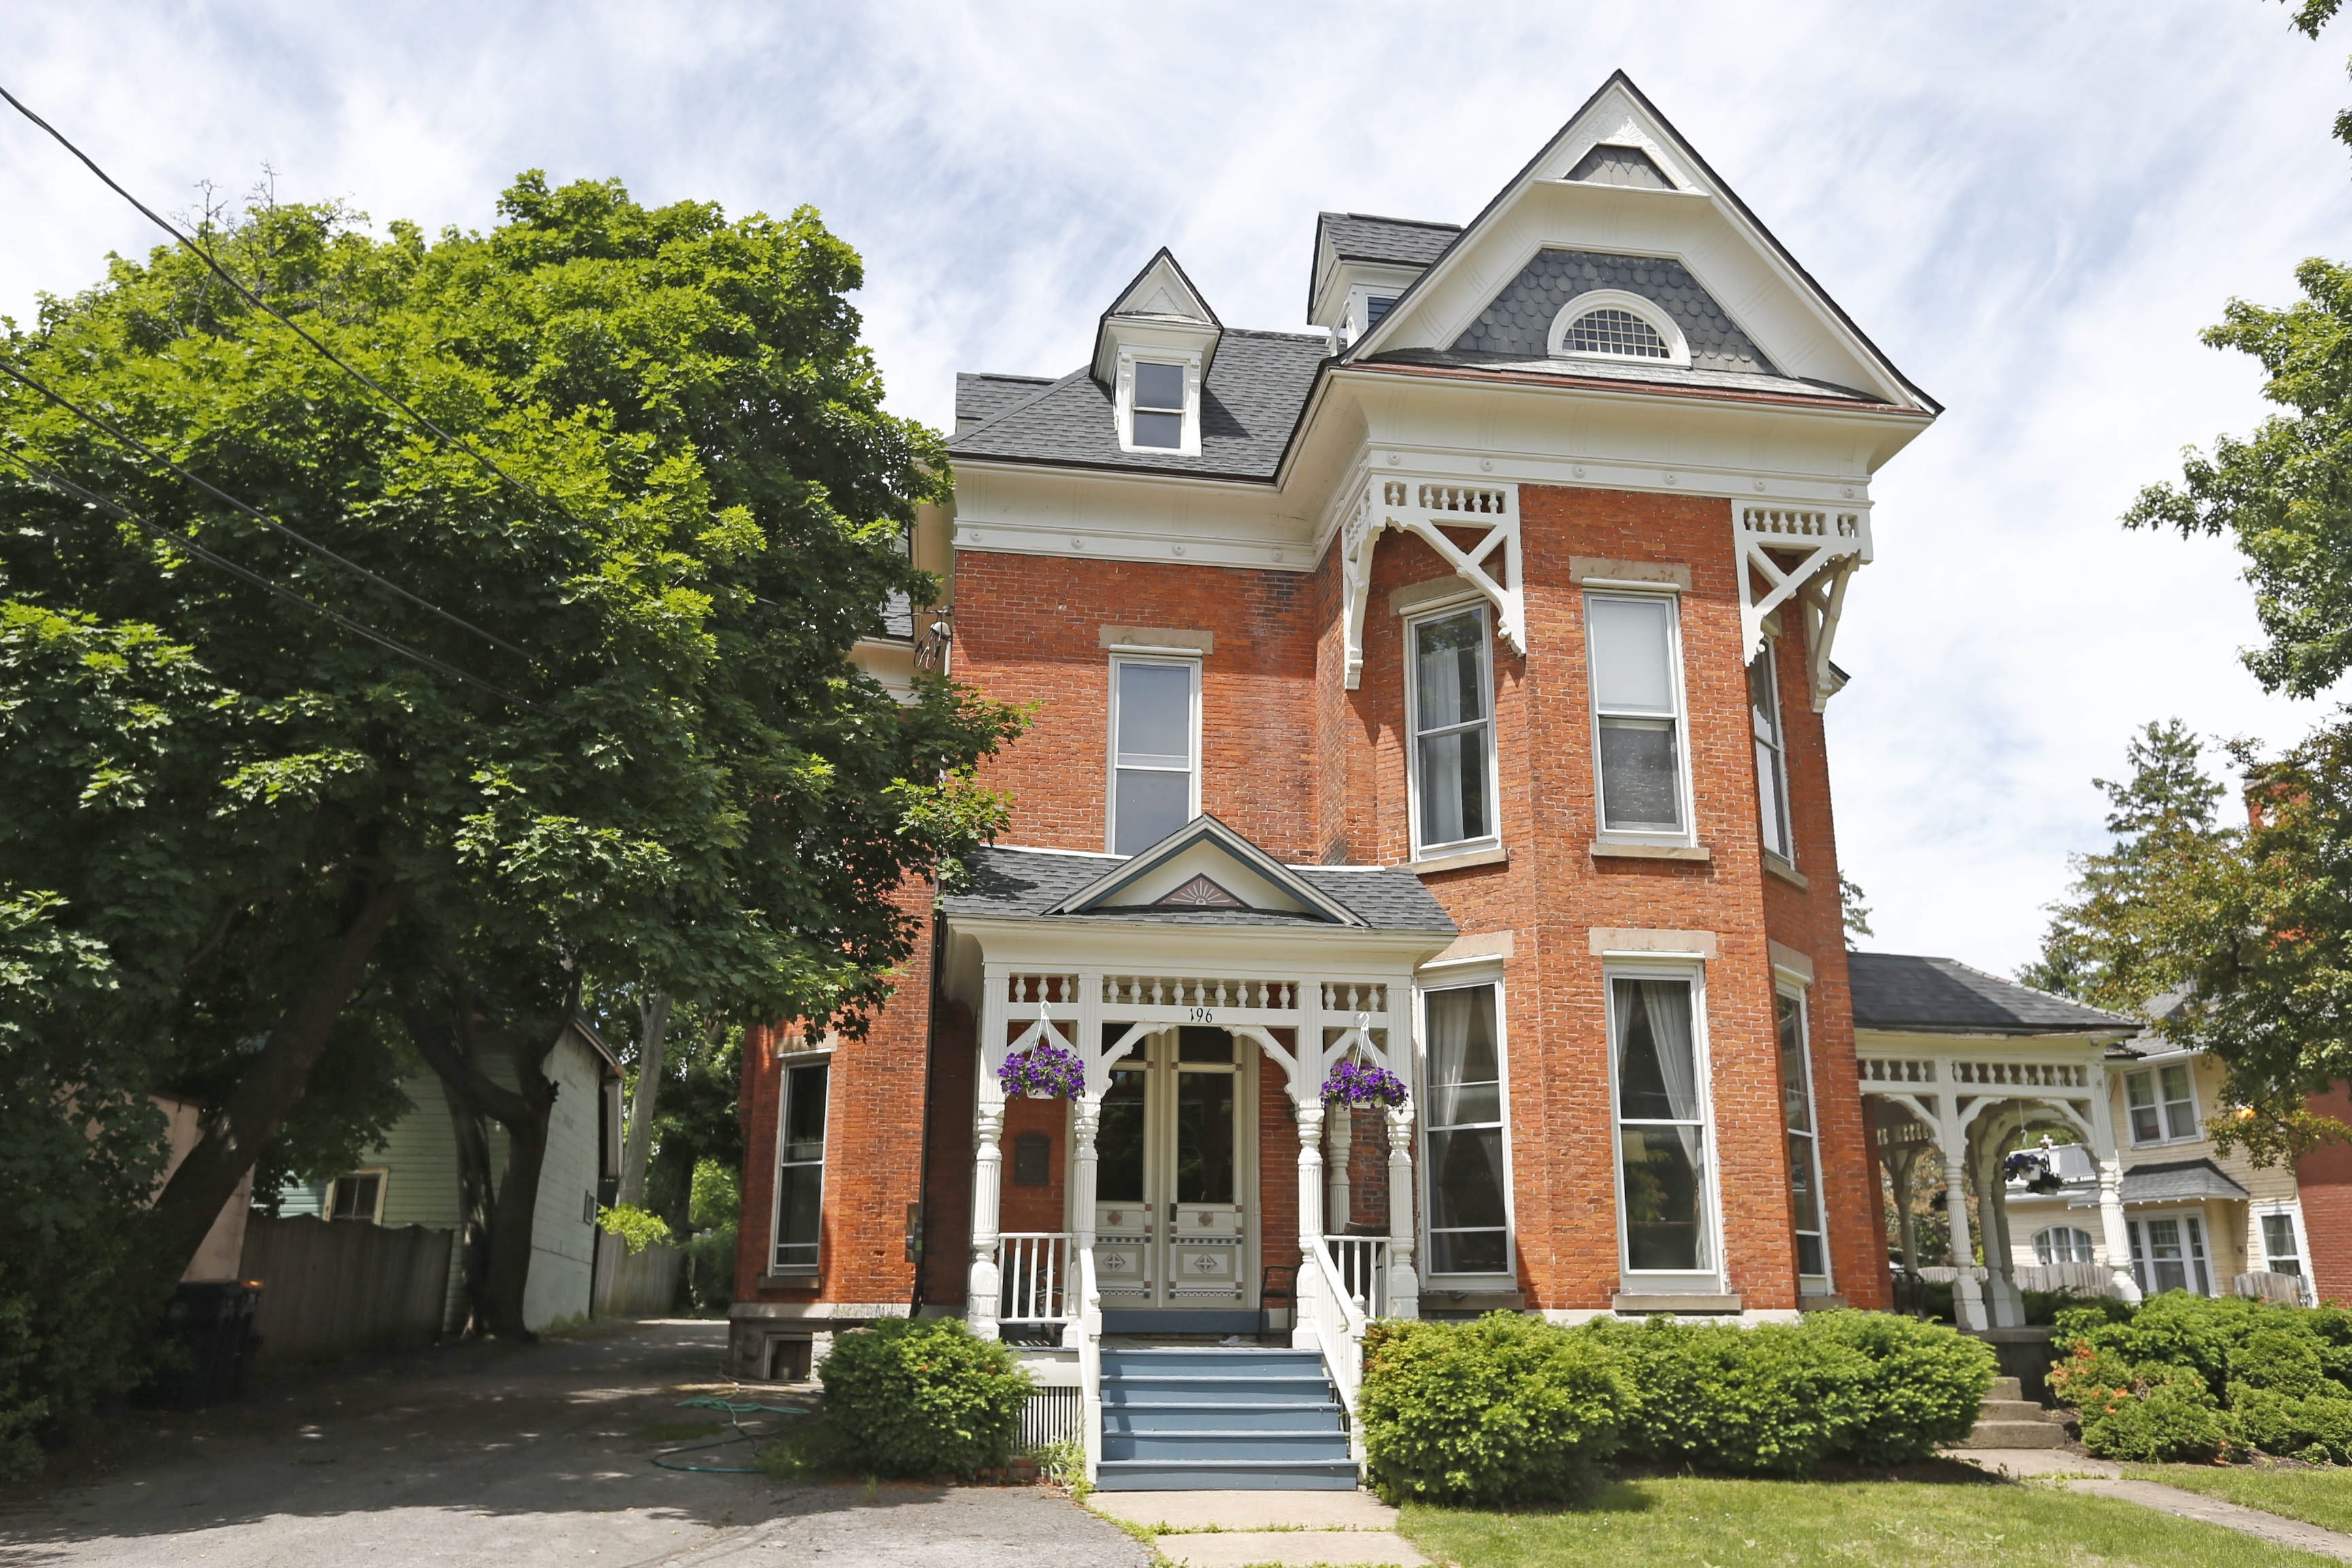 196 Locust St., Lockport, is among the homes on the nomination list for the National Register of Historic Places.  (Robert Kirkham/Buffalo News)